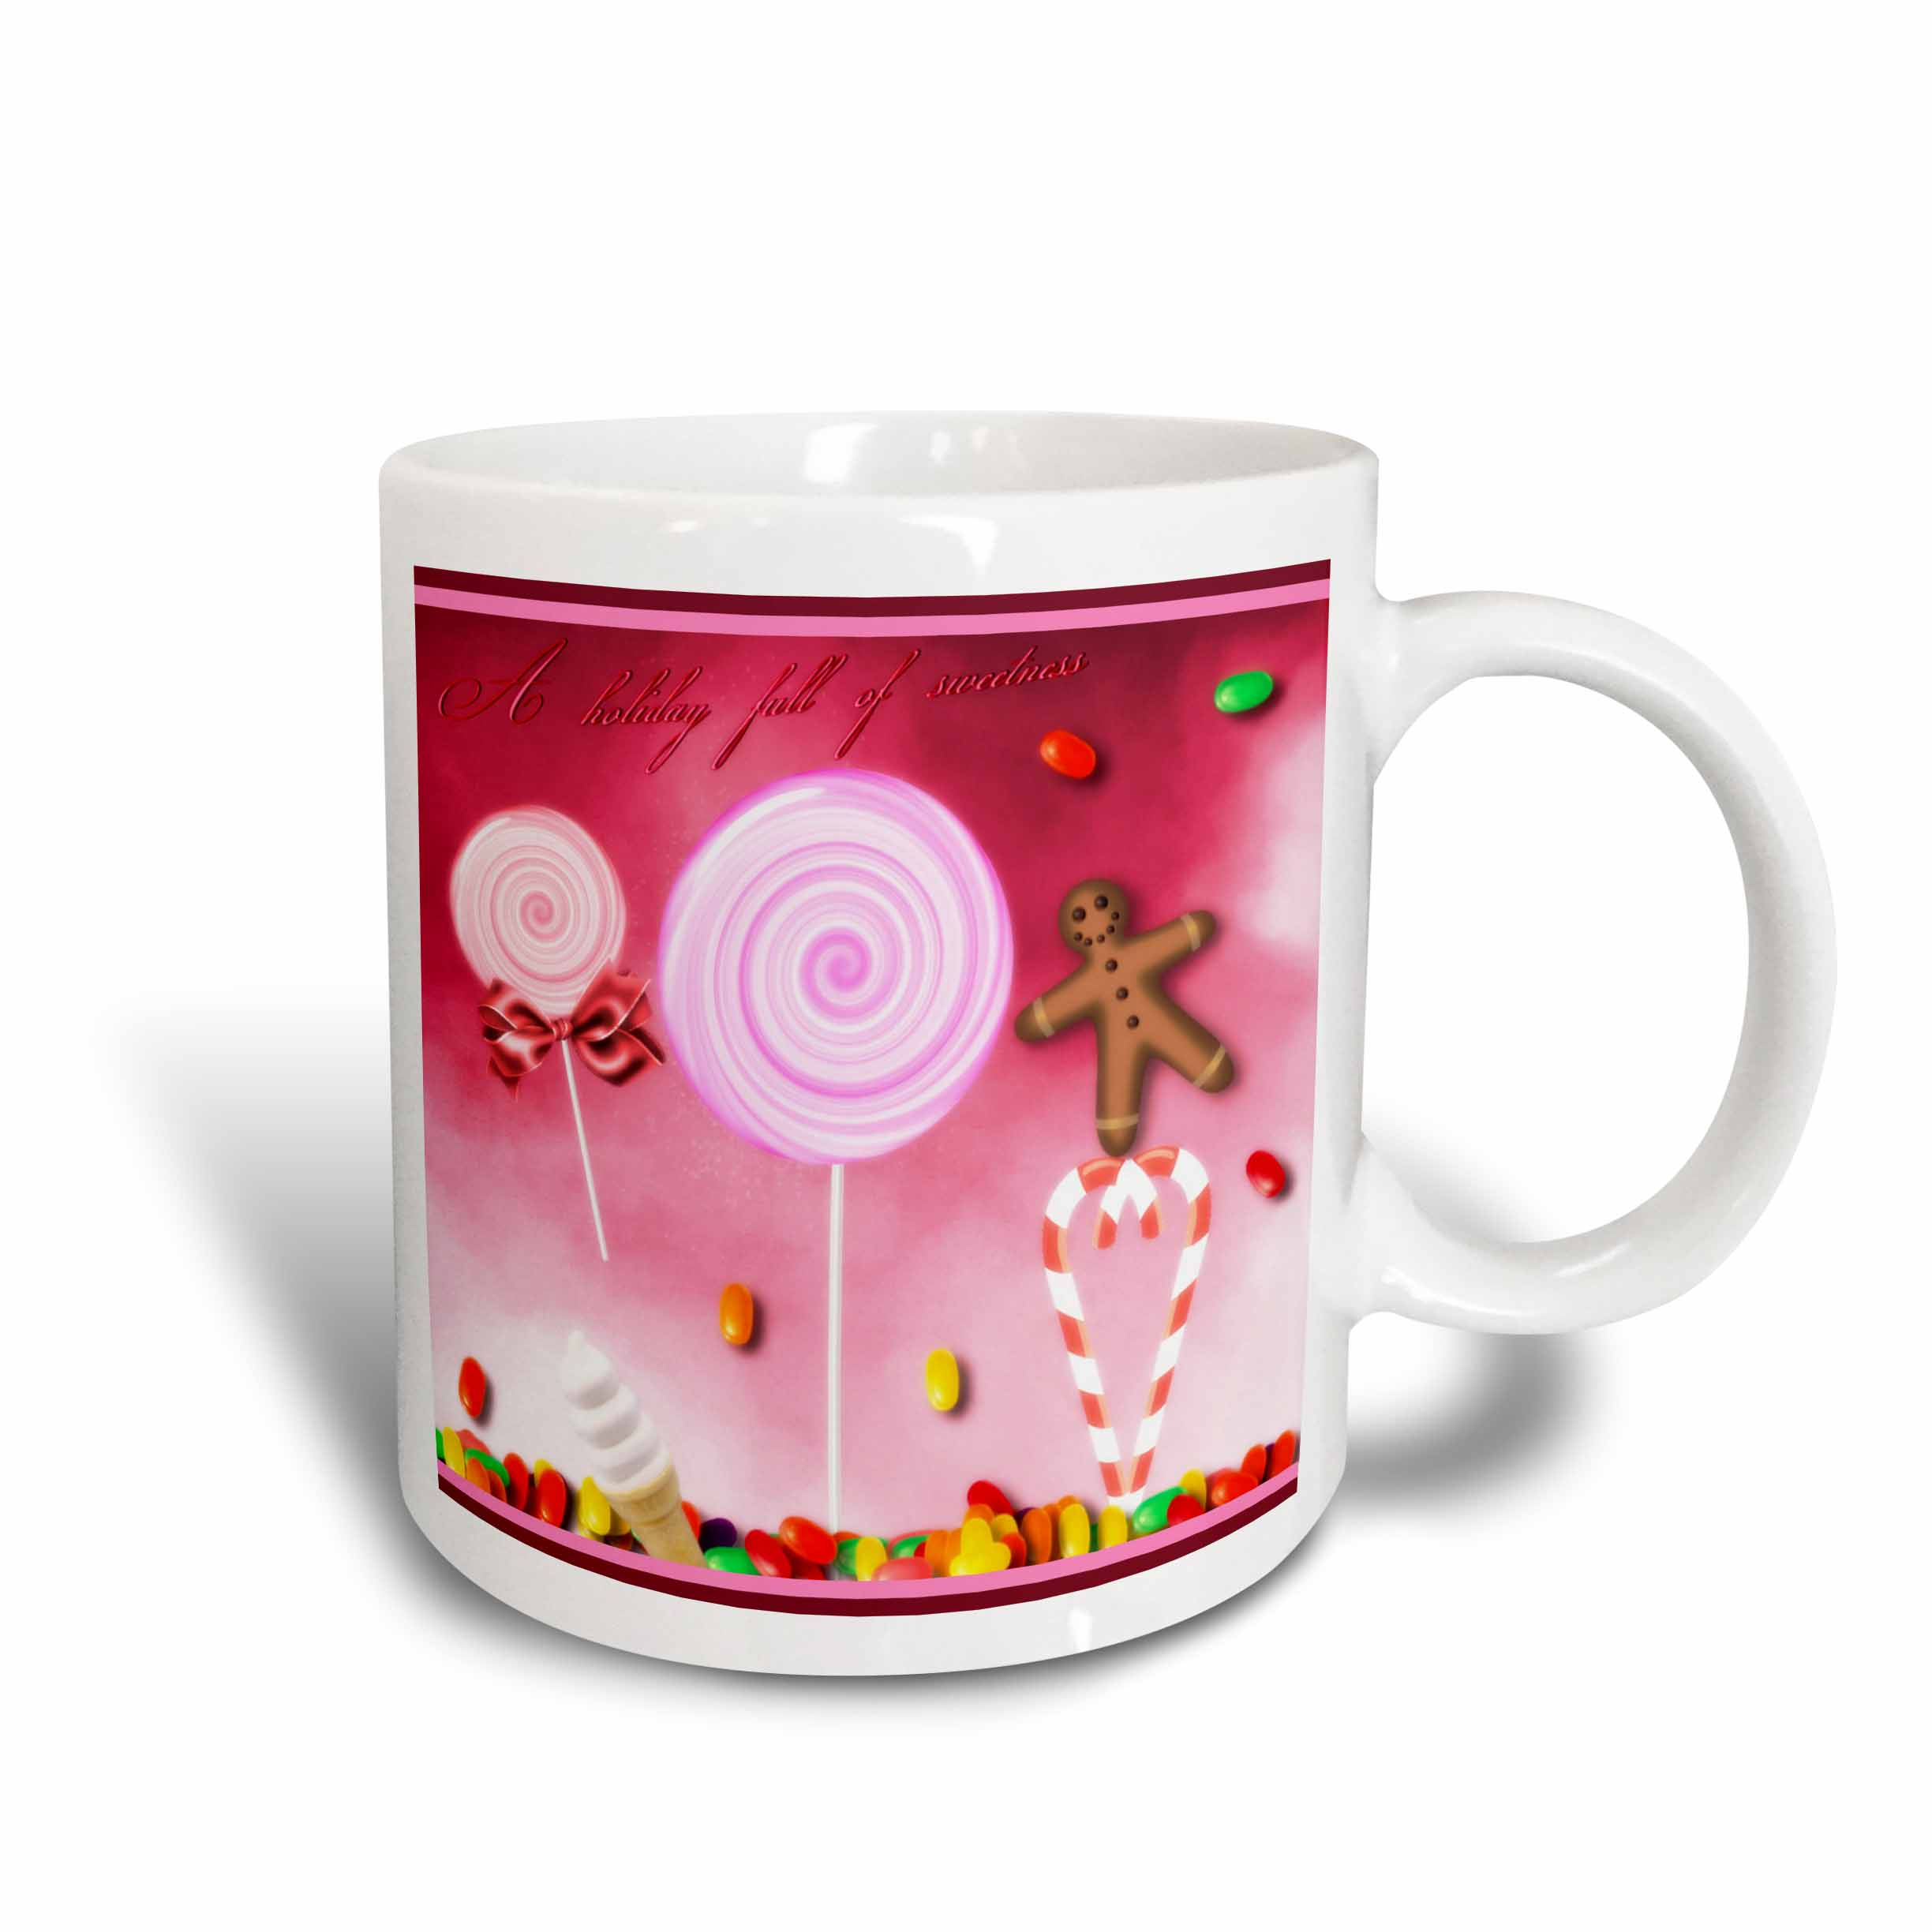 3dRose Holiday Sweets, Candycane, Gingerbread Man, And Lollipops, Ceramic Mug, 15-ounce